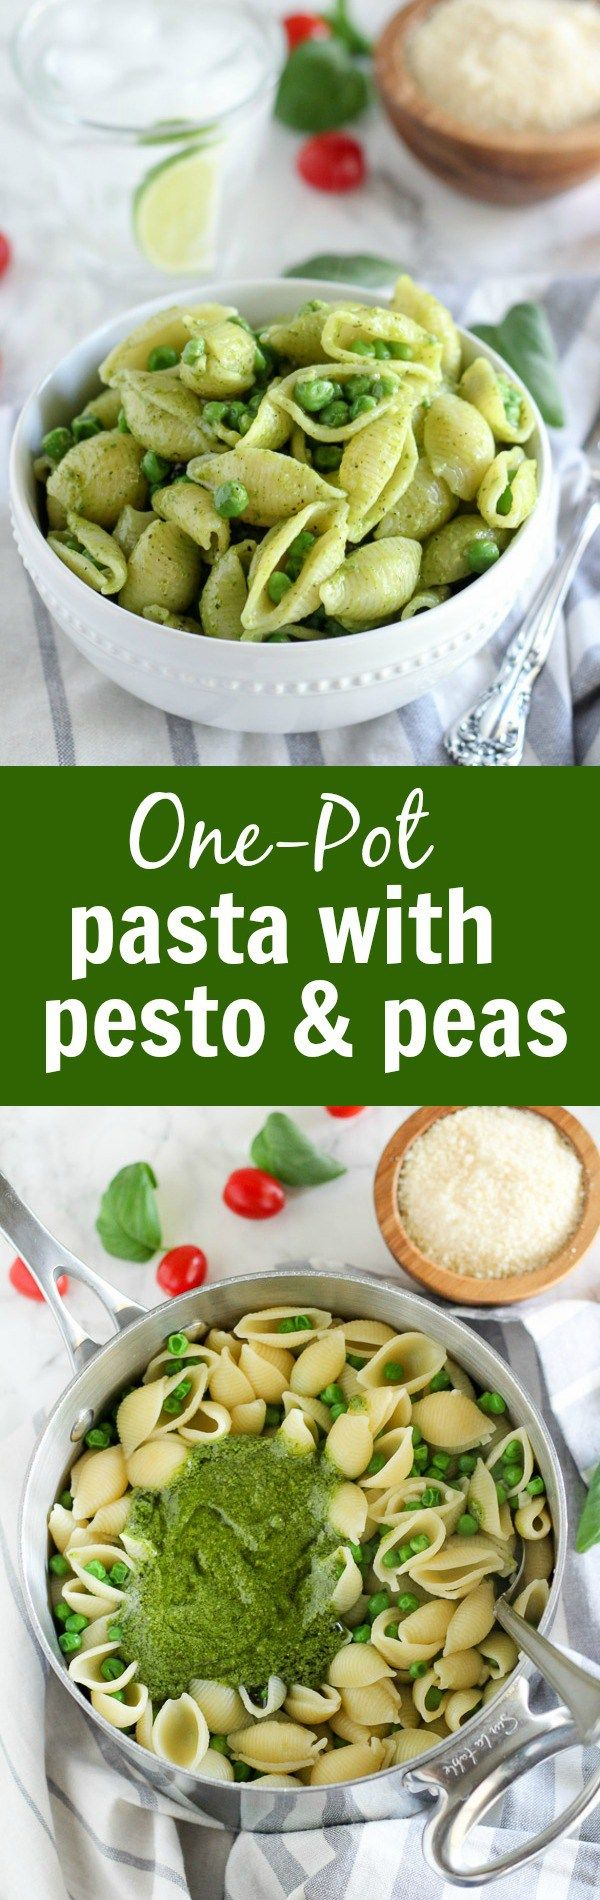 Pasta with Pesto and Peas - A fast and easy one-pot dinner made of pasta with store bought basil pesto and peas. Ready in under 30 minutes with 4 basic ingredients.